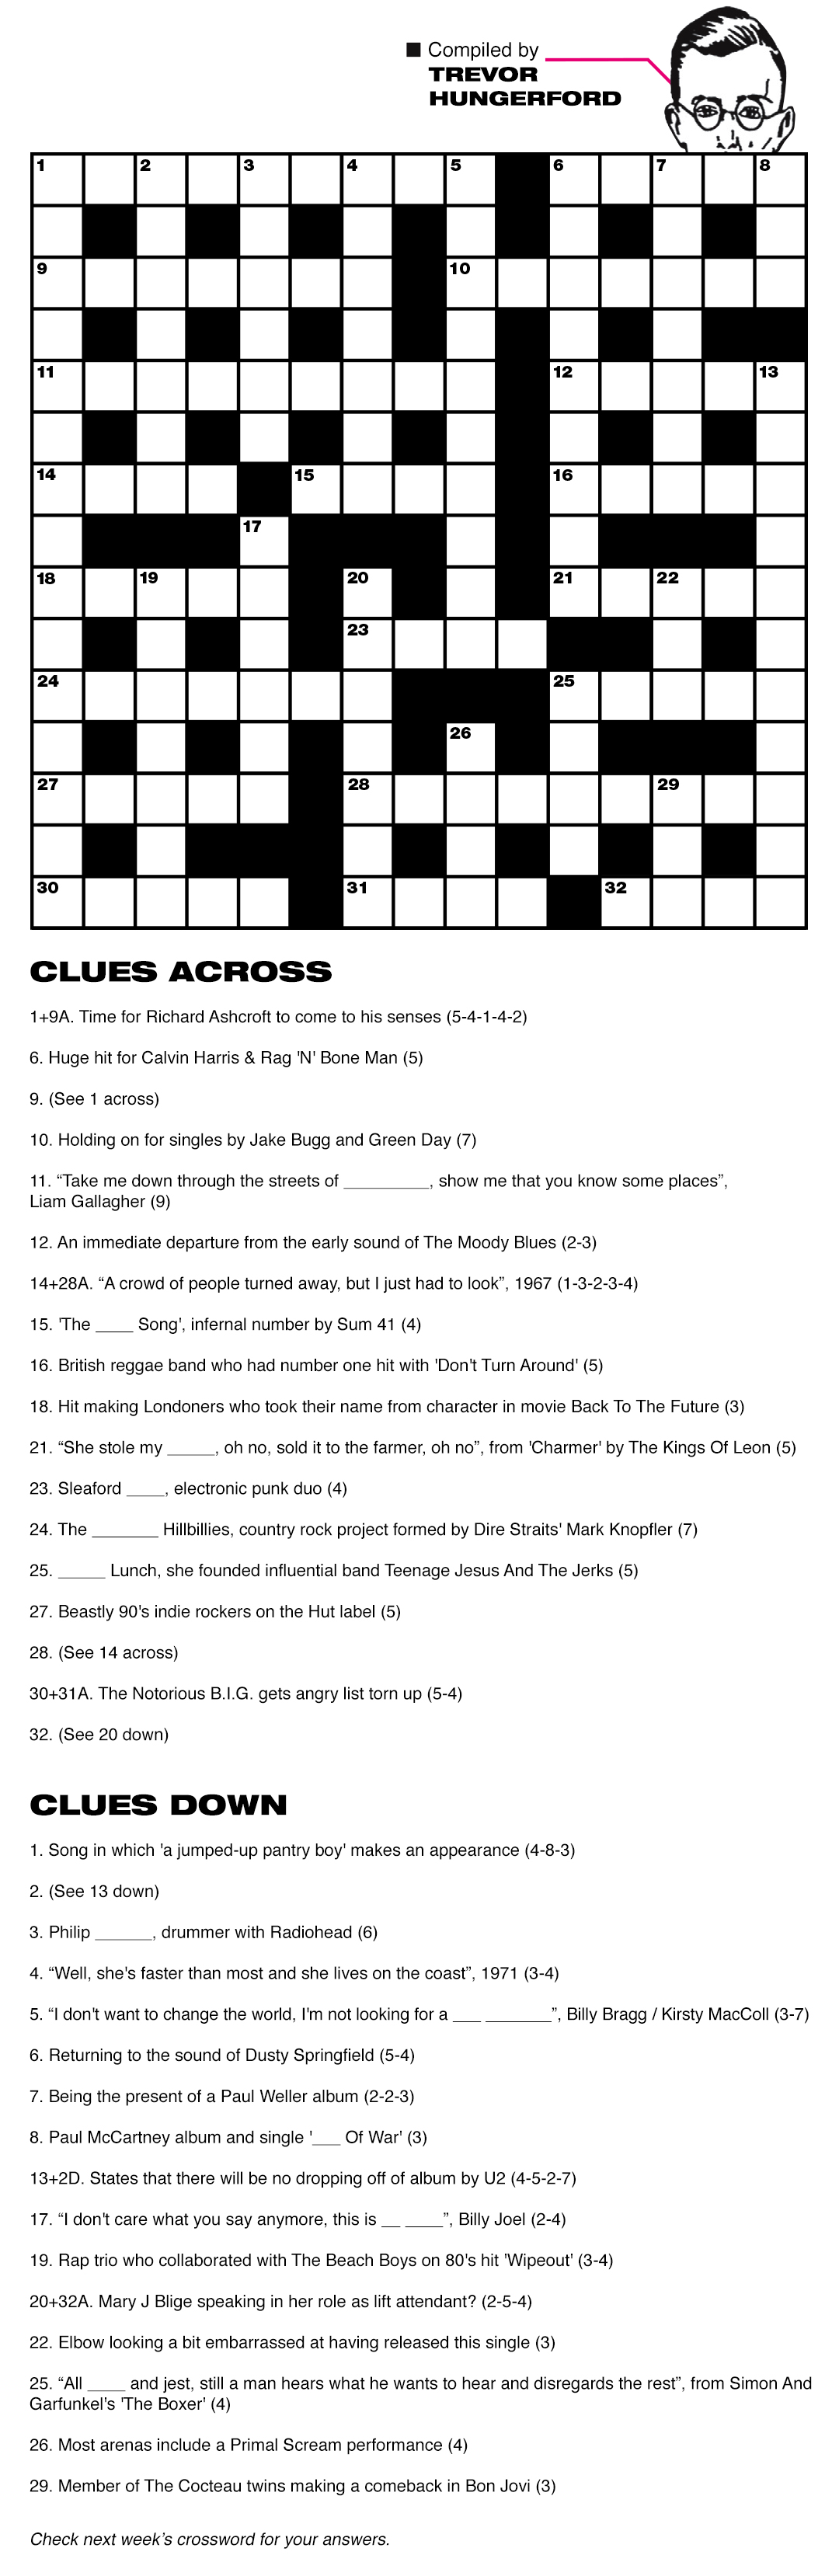 NME crossword